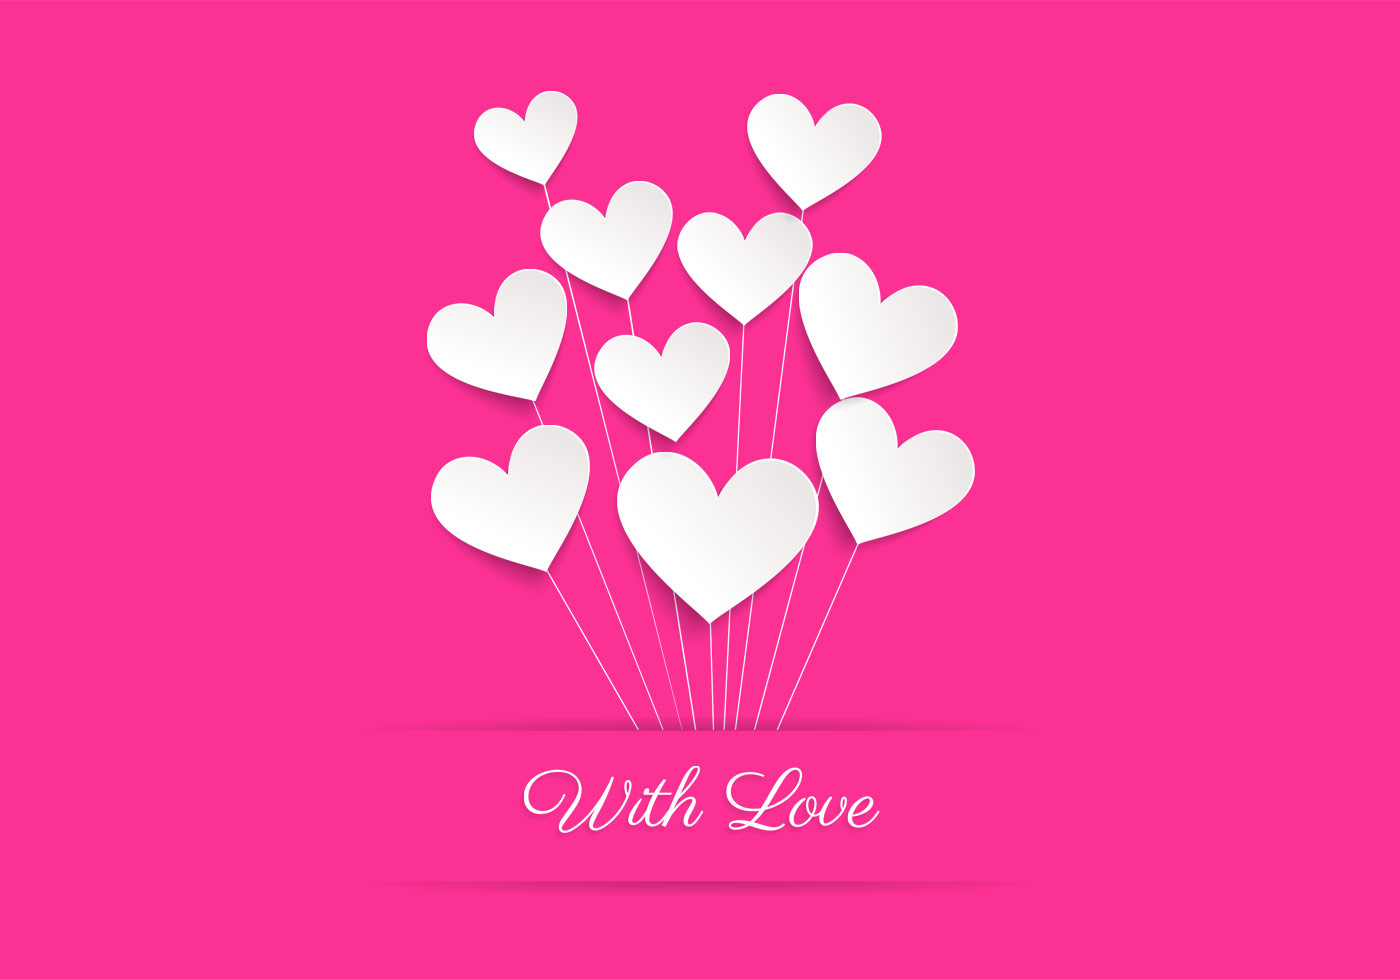 Download Pink Heart Balloon Love Vector Background - Download Free ...